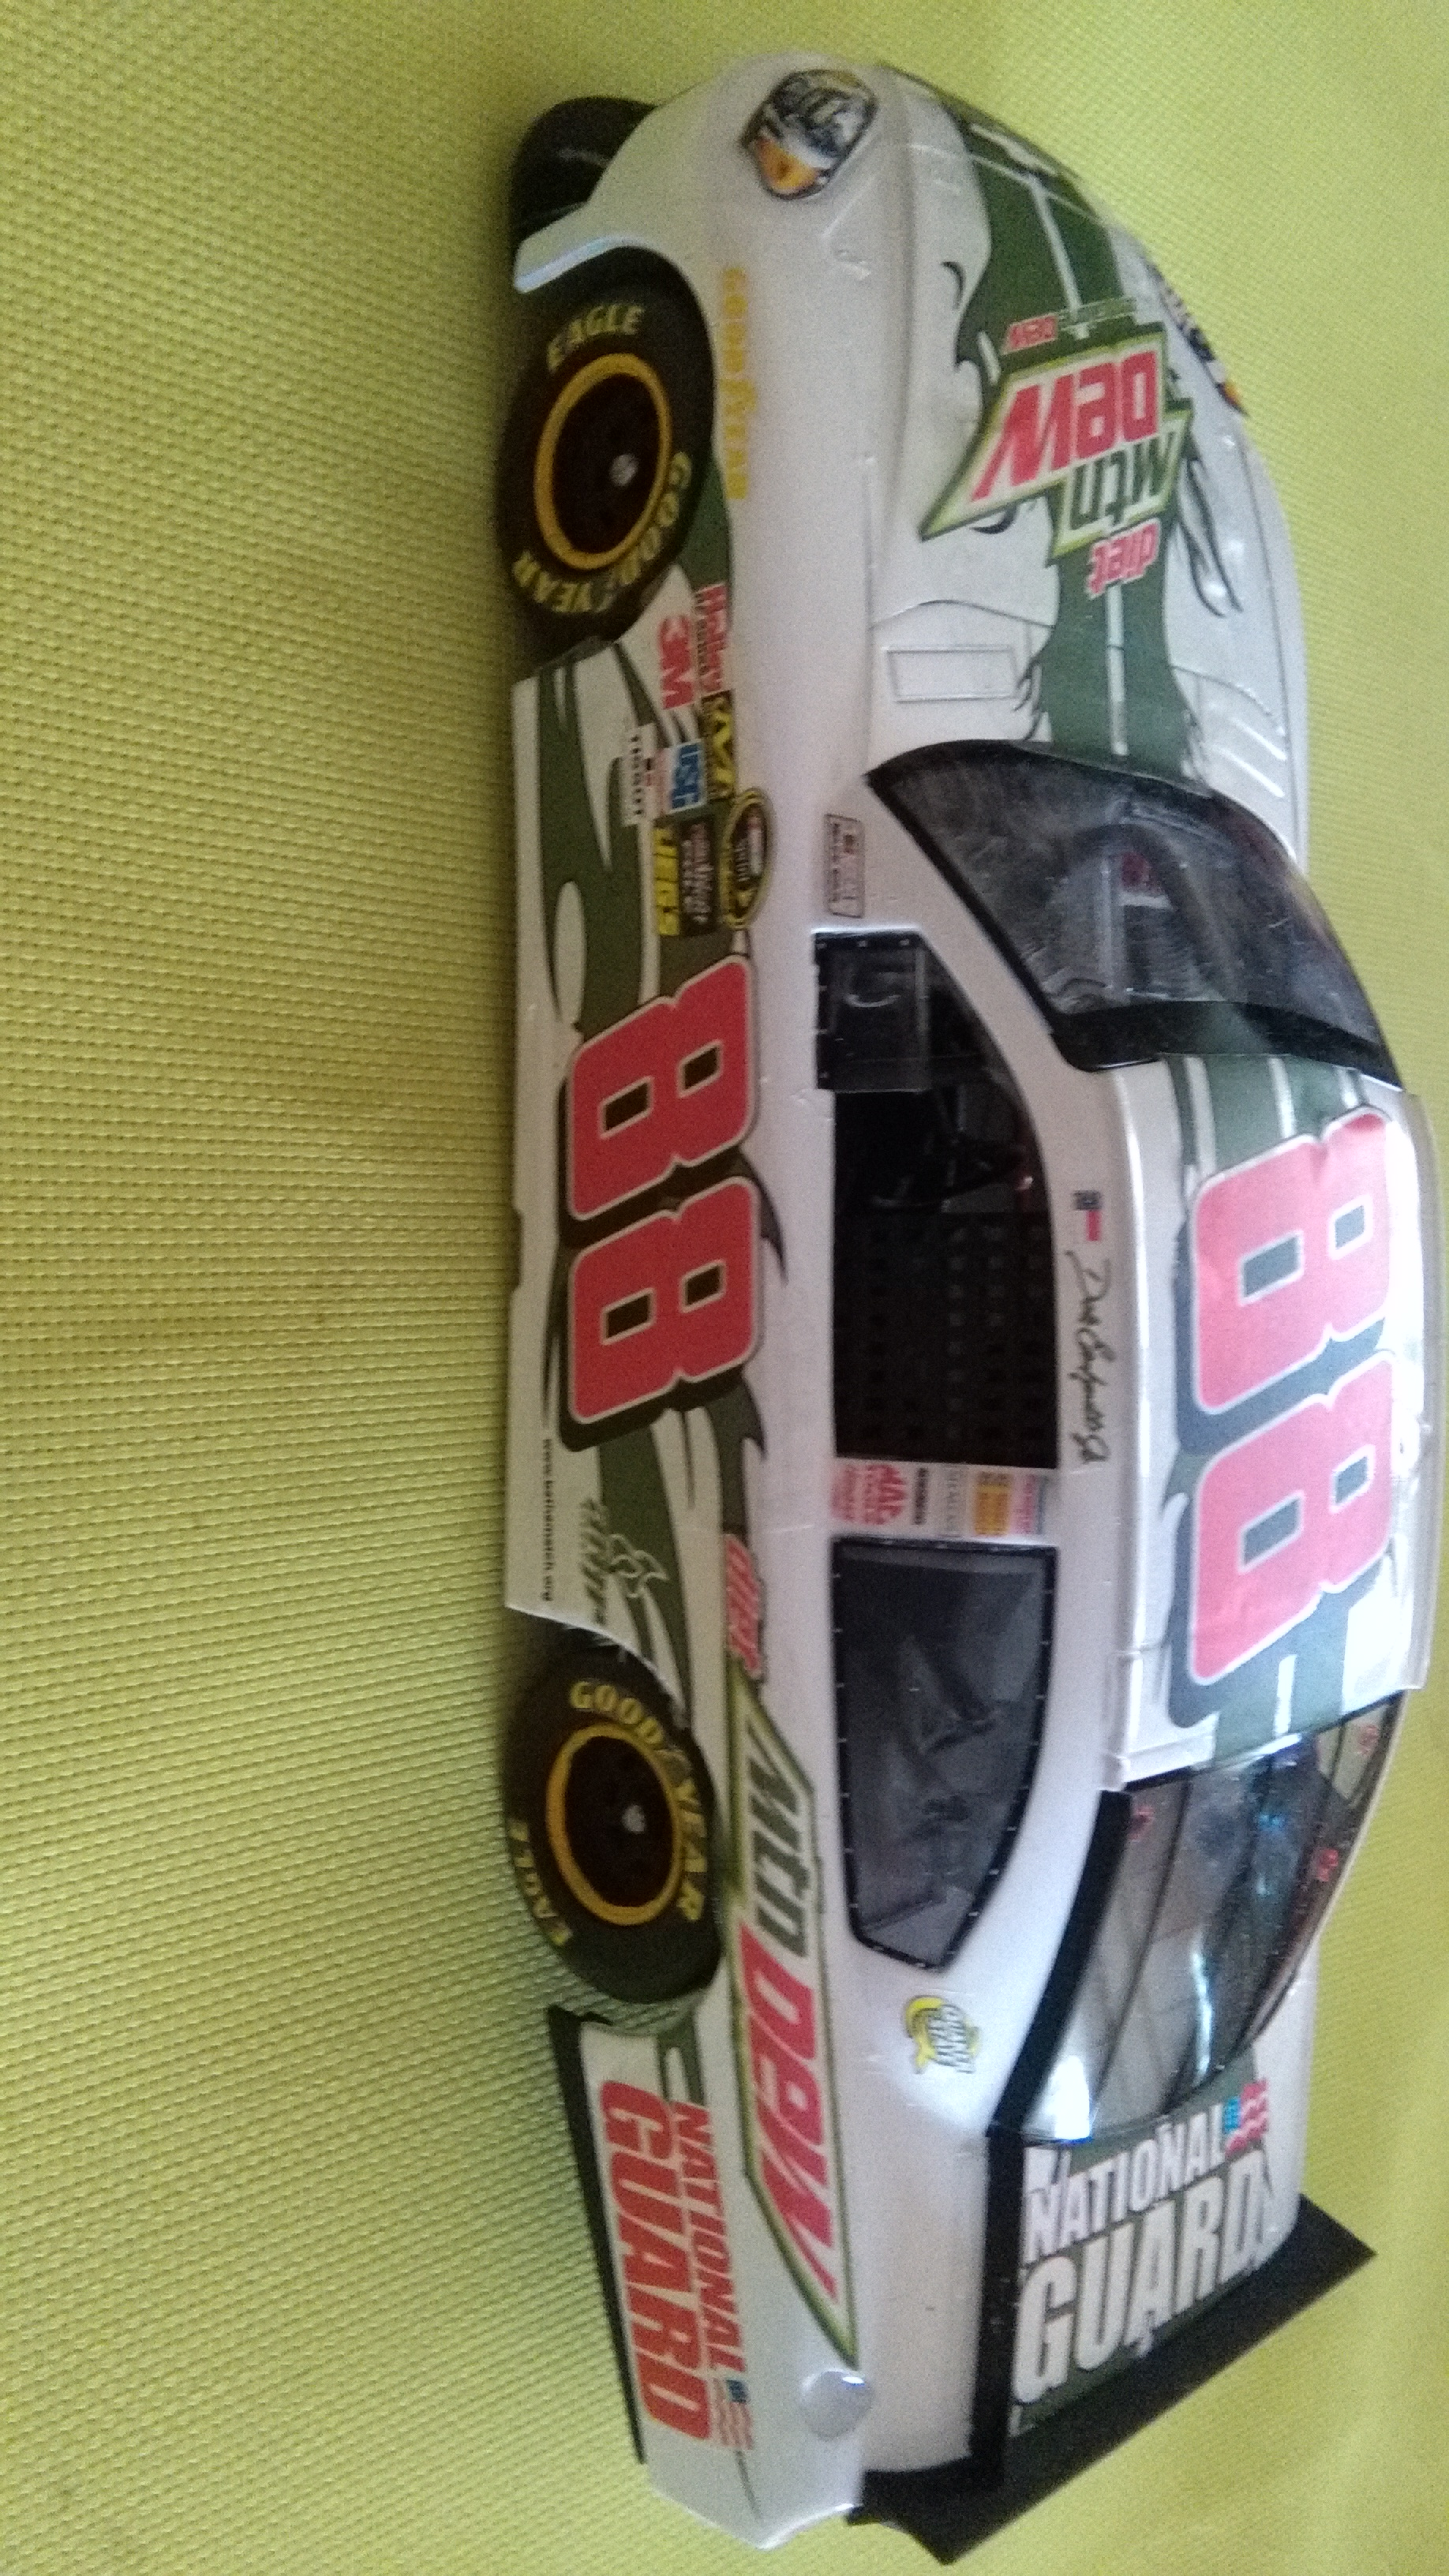 Chevy Impala 2010 #88 Earnhardt jr Mountain dew diet 720502IMG20160320150407